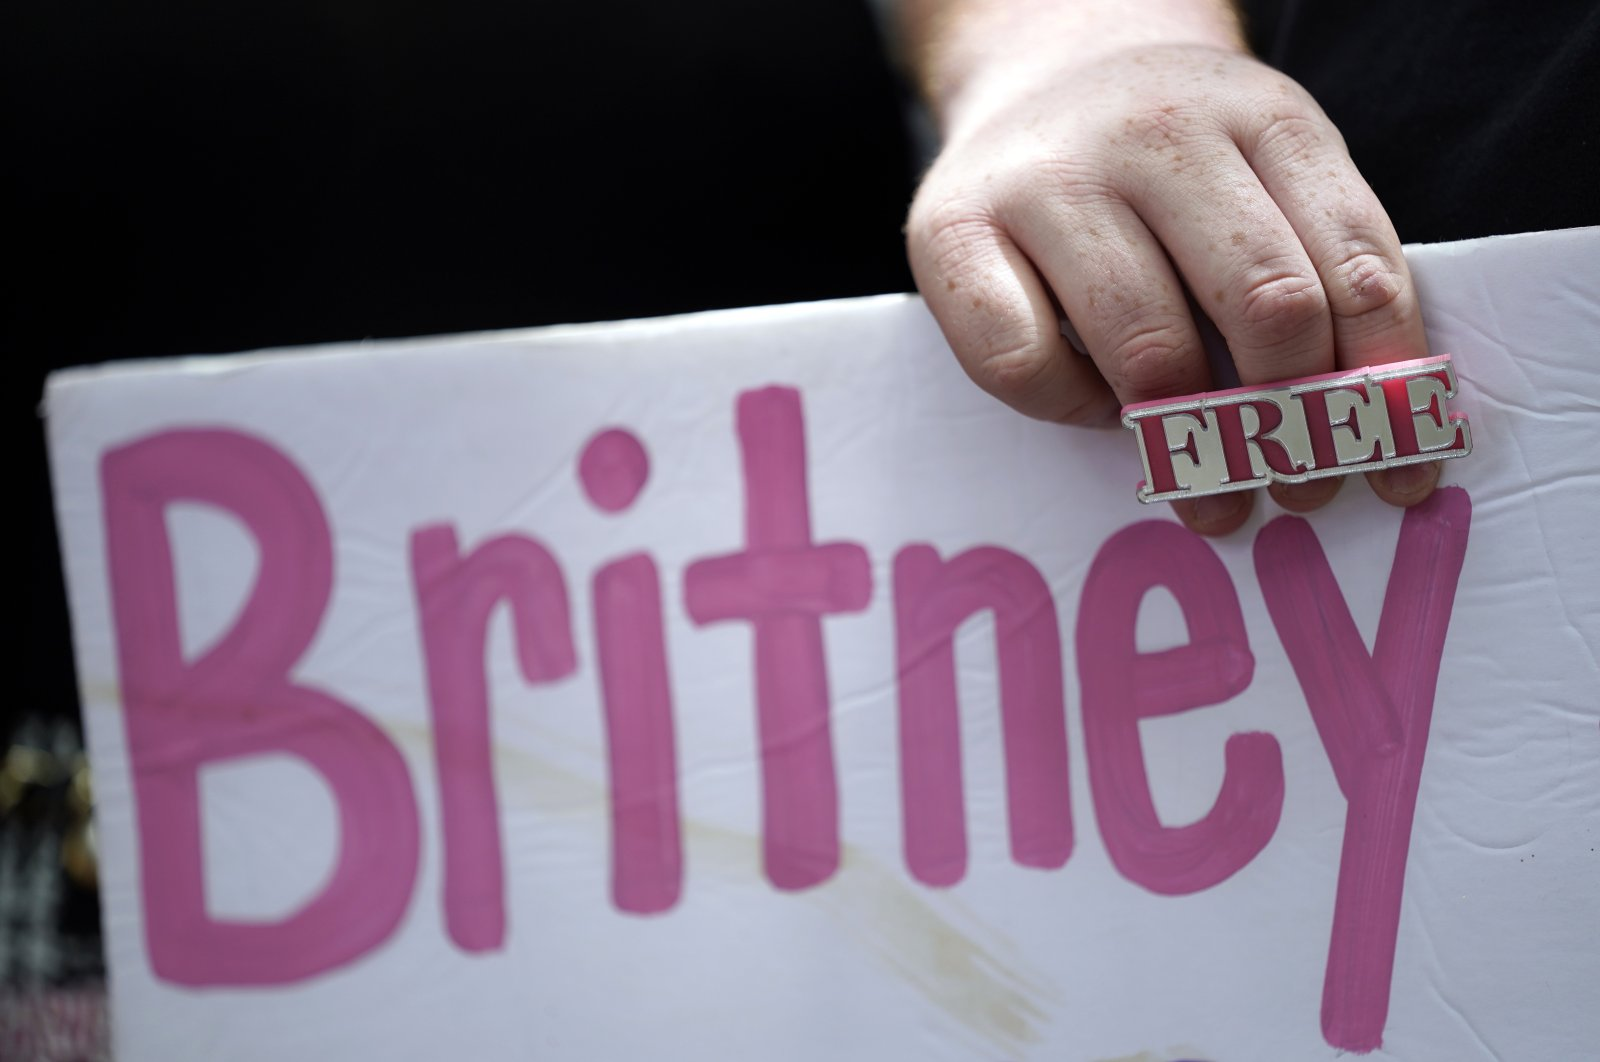 A Britney Spears supporter holds a sign outside a court hearing concerning the pop singer's conservatorship at the Stanley Mosk Courthouse in Los Angeles, U.S., June 23, 2021. (AP Photo)